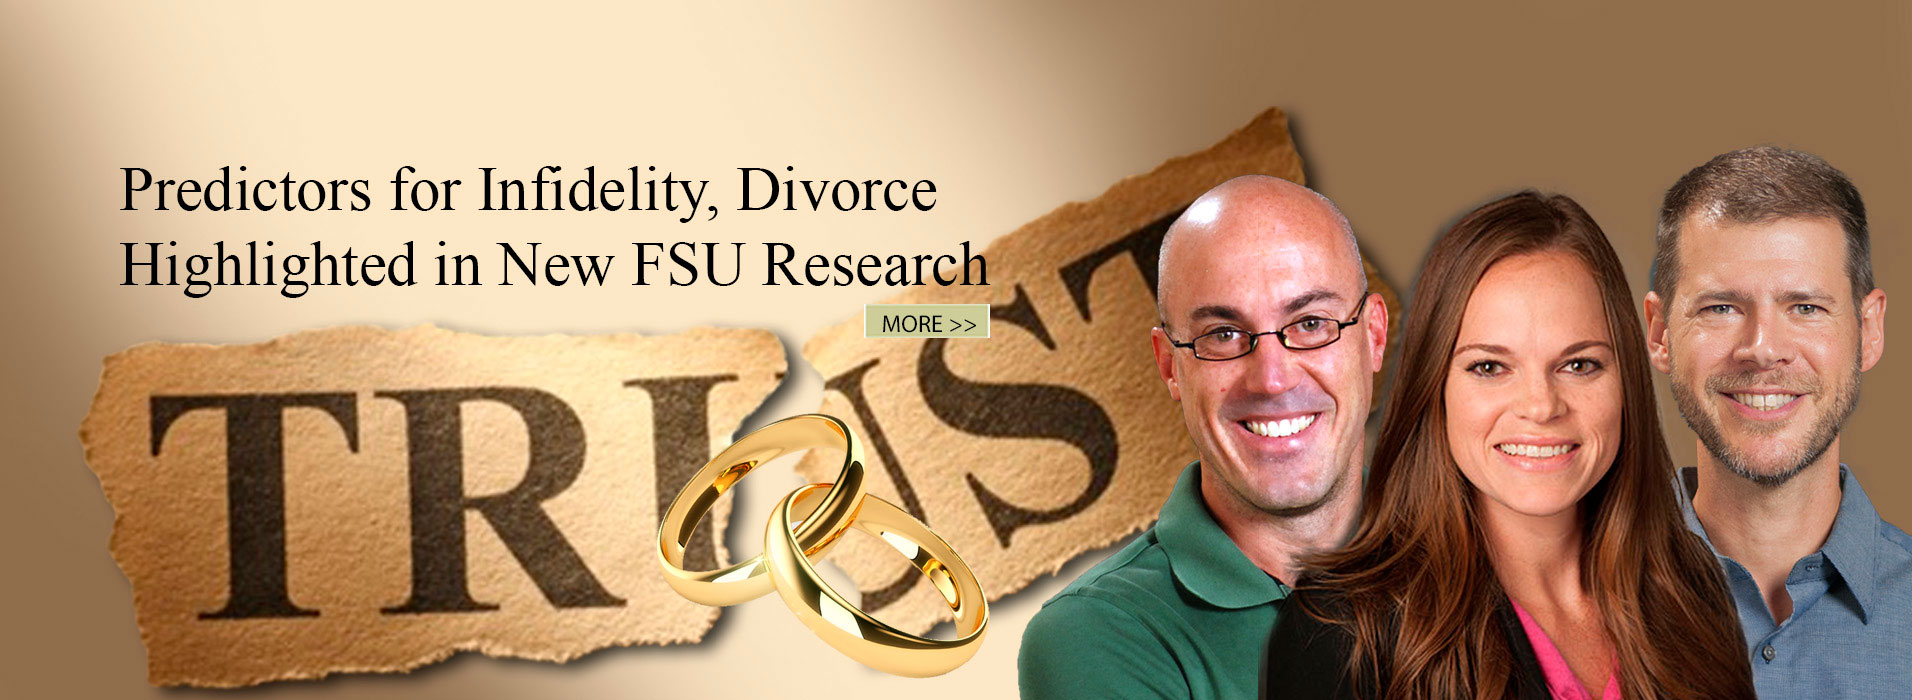 Predictors for Infidelity, Divorce Highlighted in New FSU Research